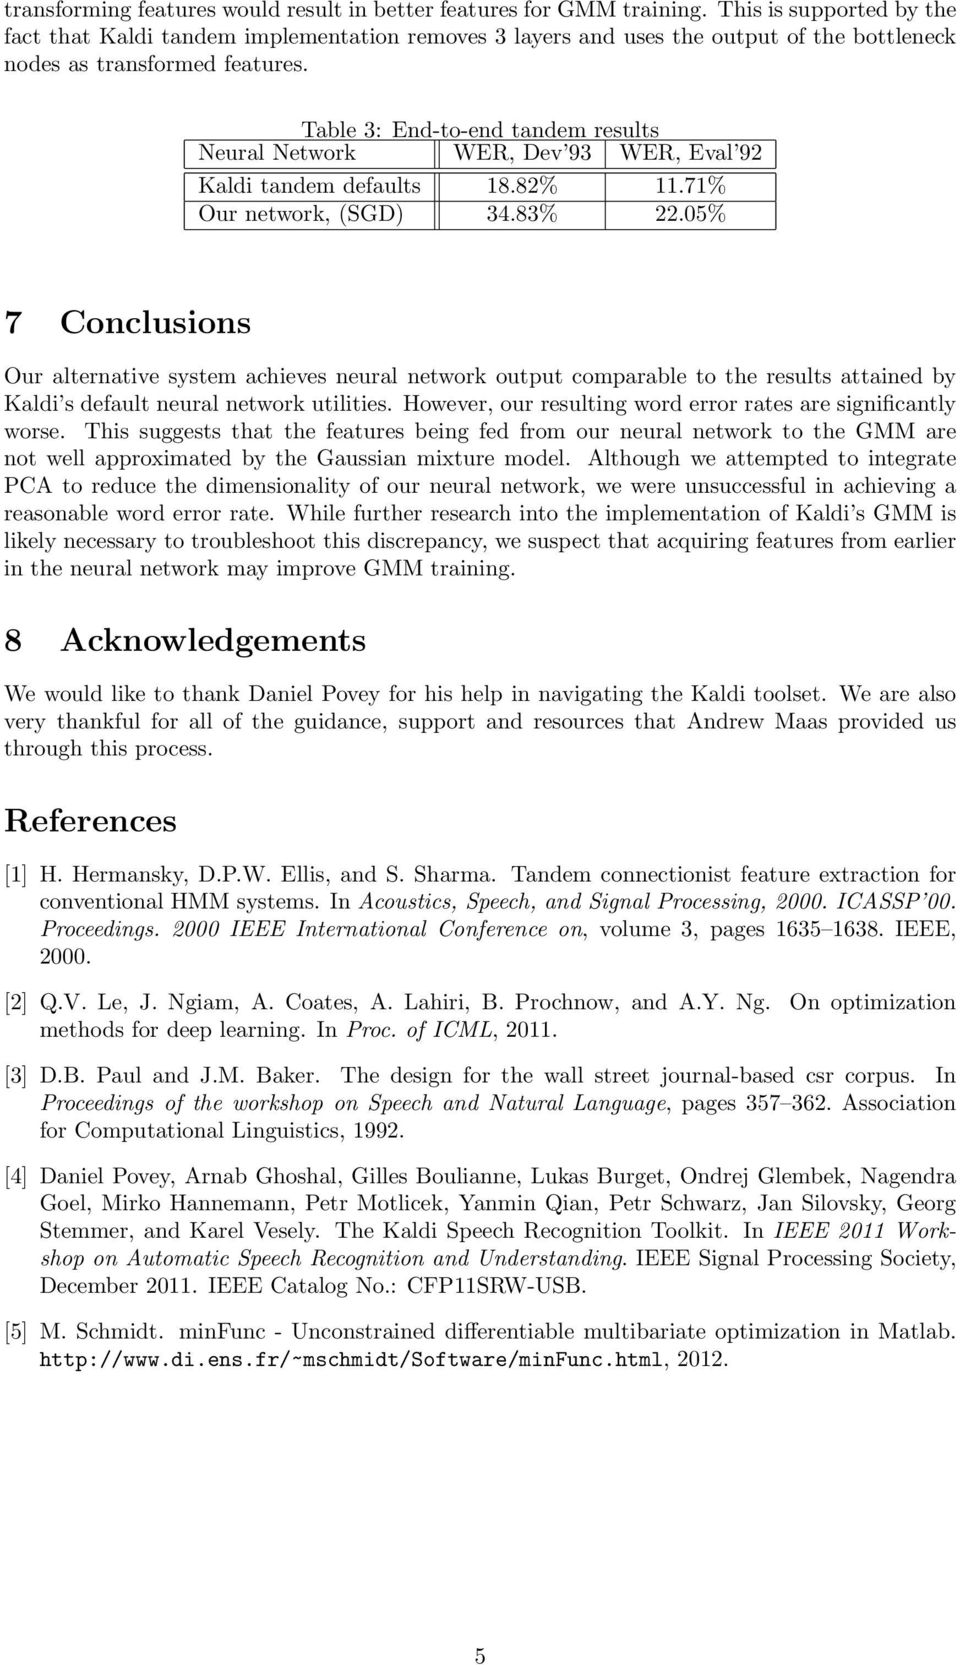 Improvement of an Automatic Speech Recognition Toolkit - PDF